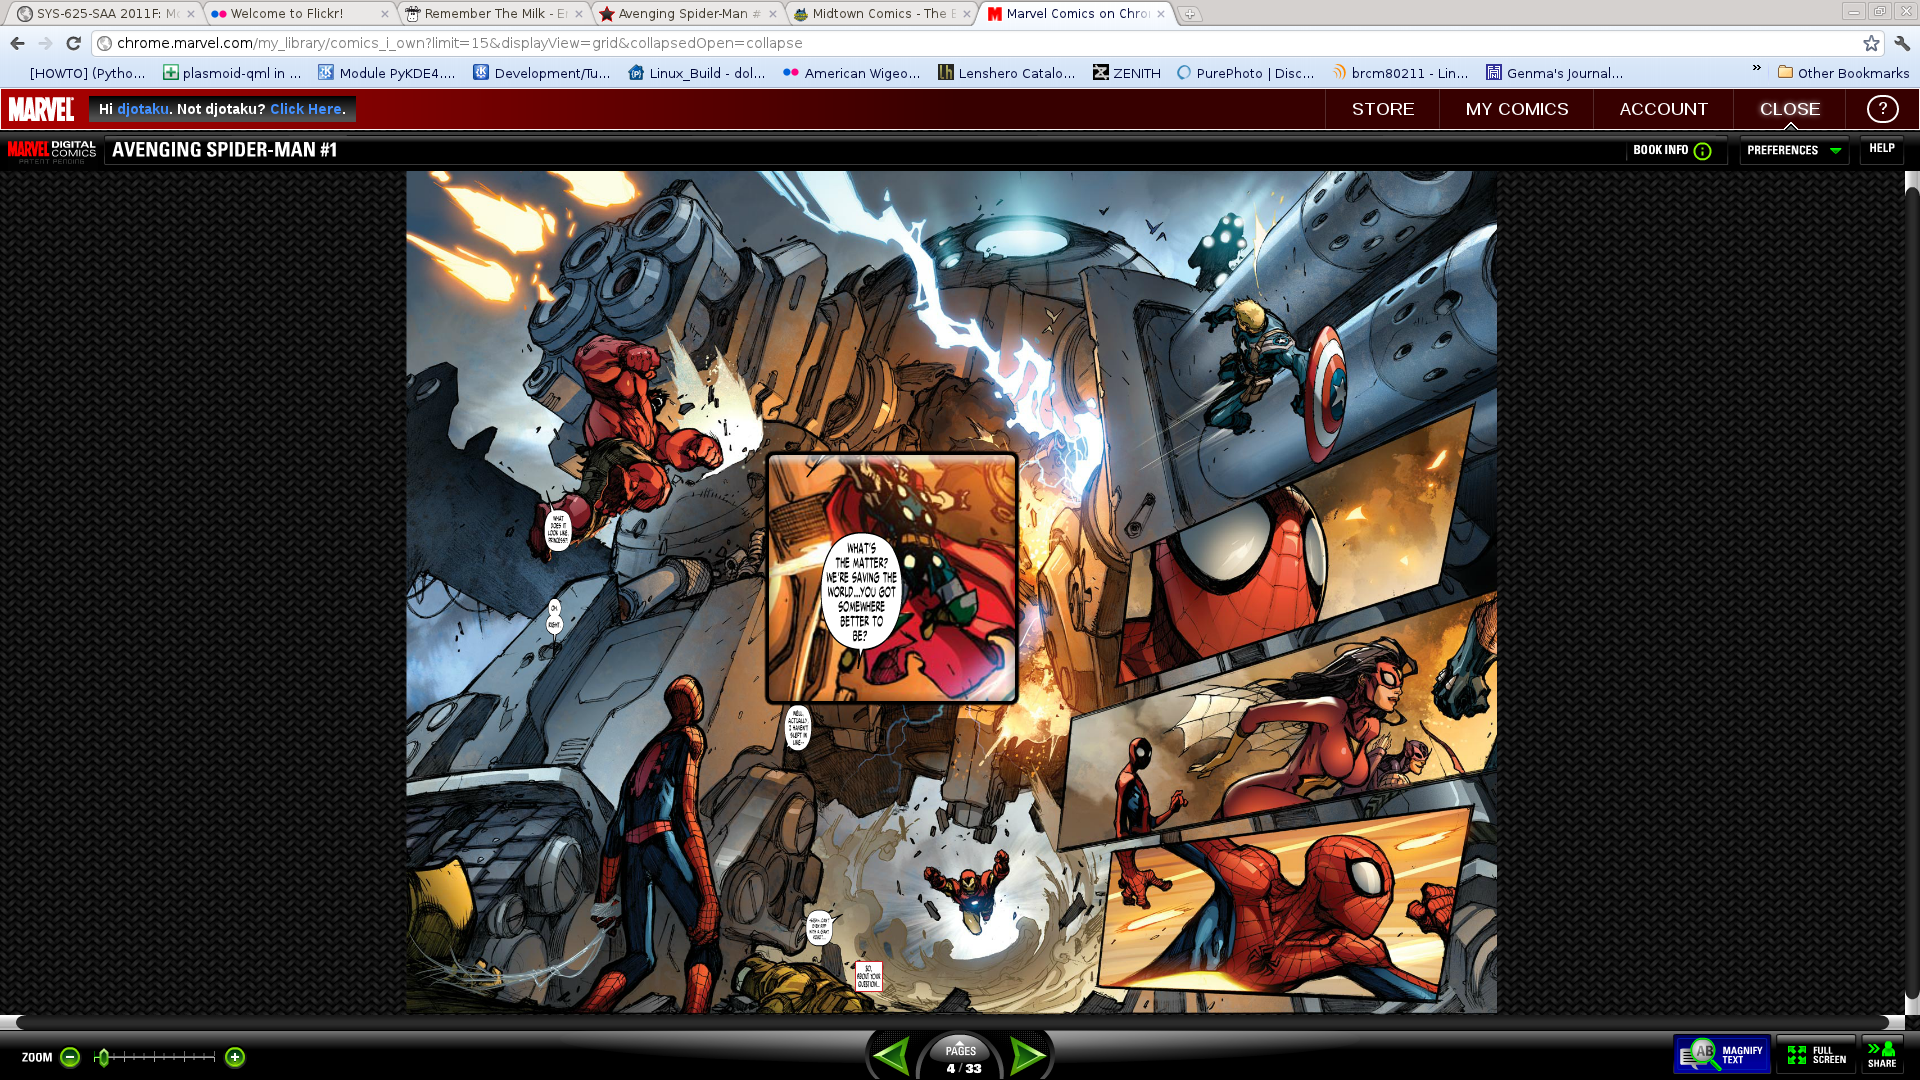 Marvel Comic App - using the magnifying option